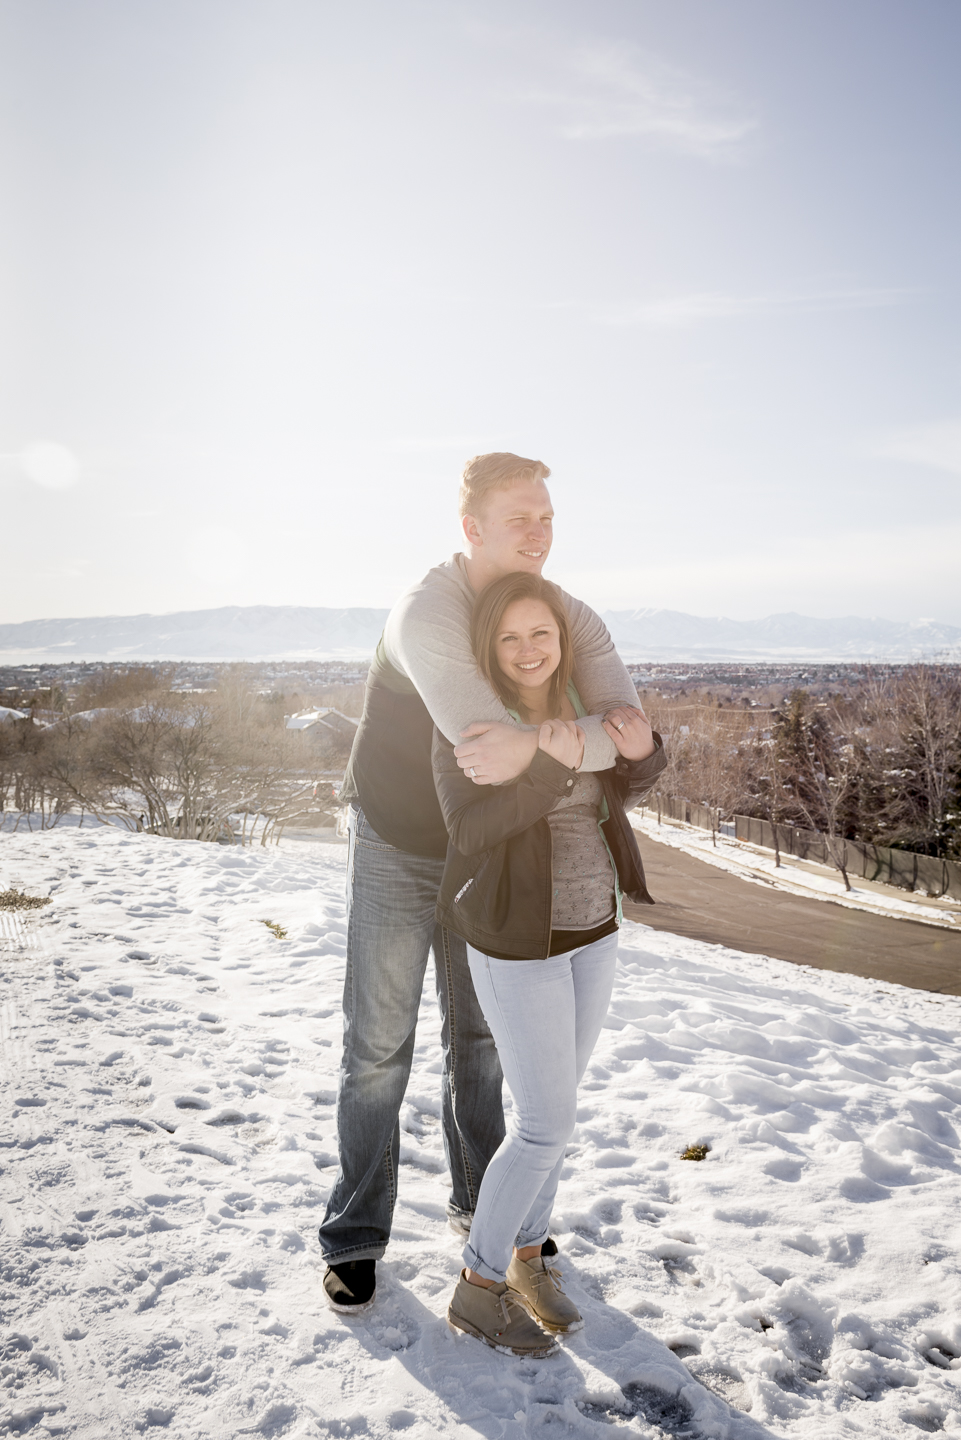 savage_couple_portrait_snow_pine_utah_Christin-11.jpg